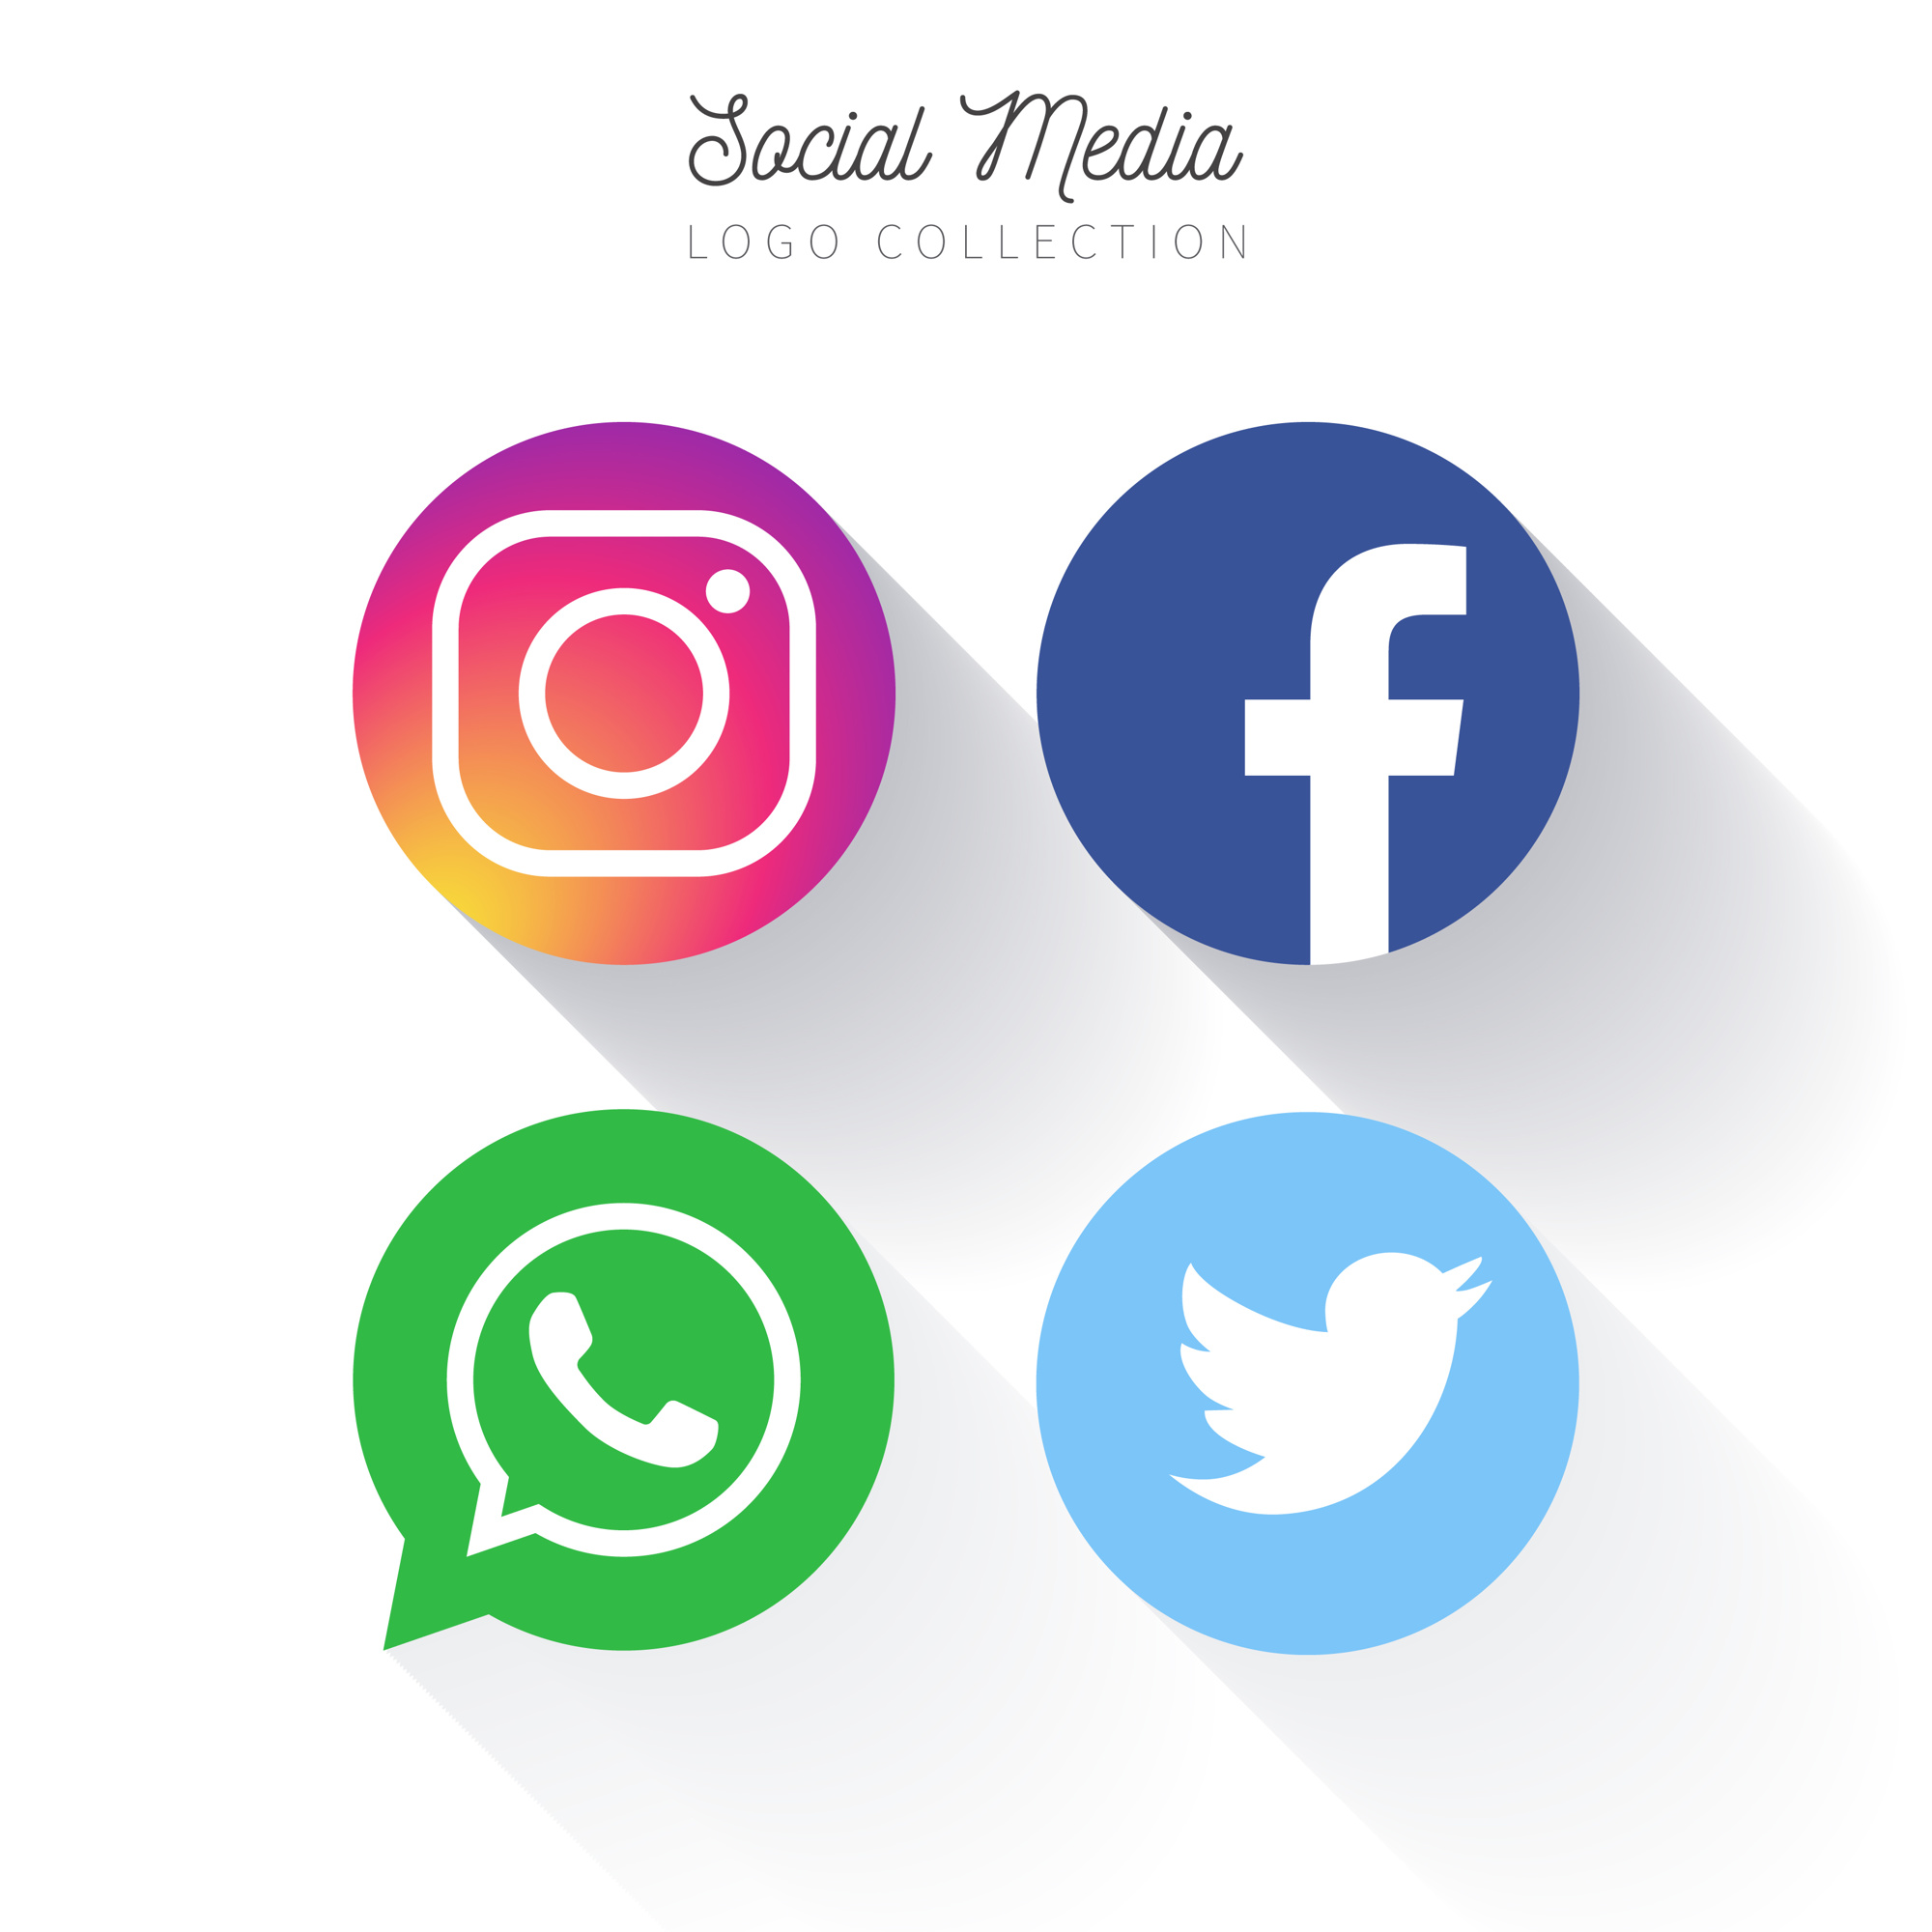 Popular Social Media circular logo collection